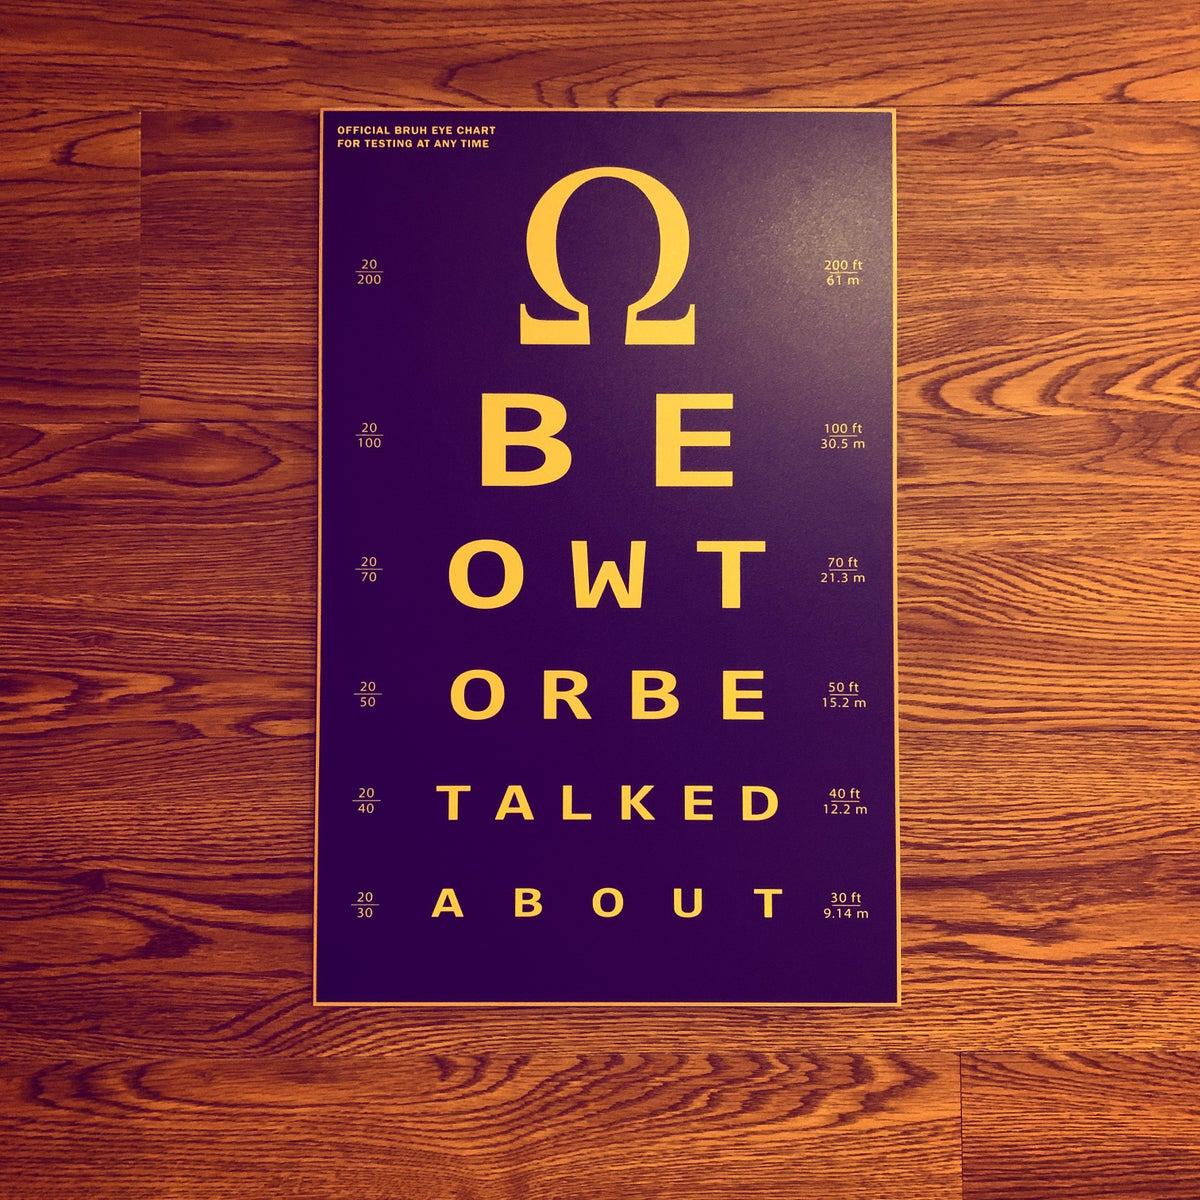 Image of Metal Eye Chart